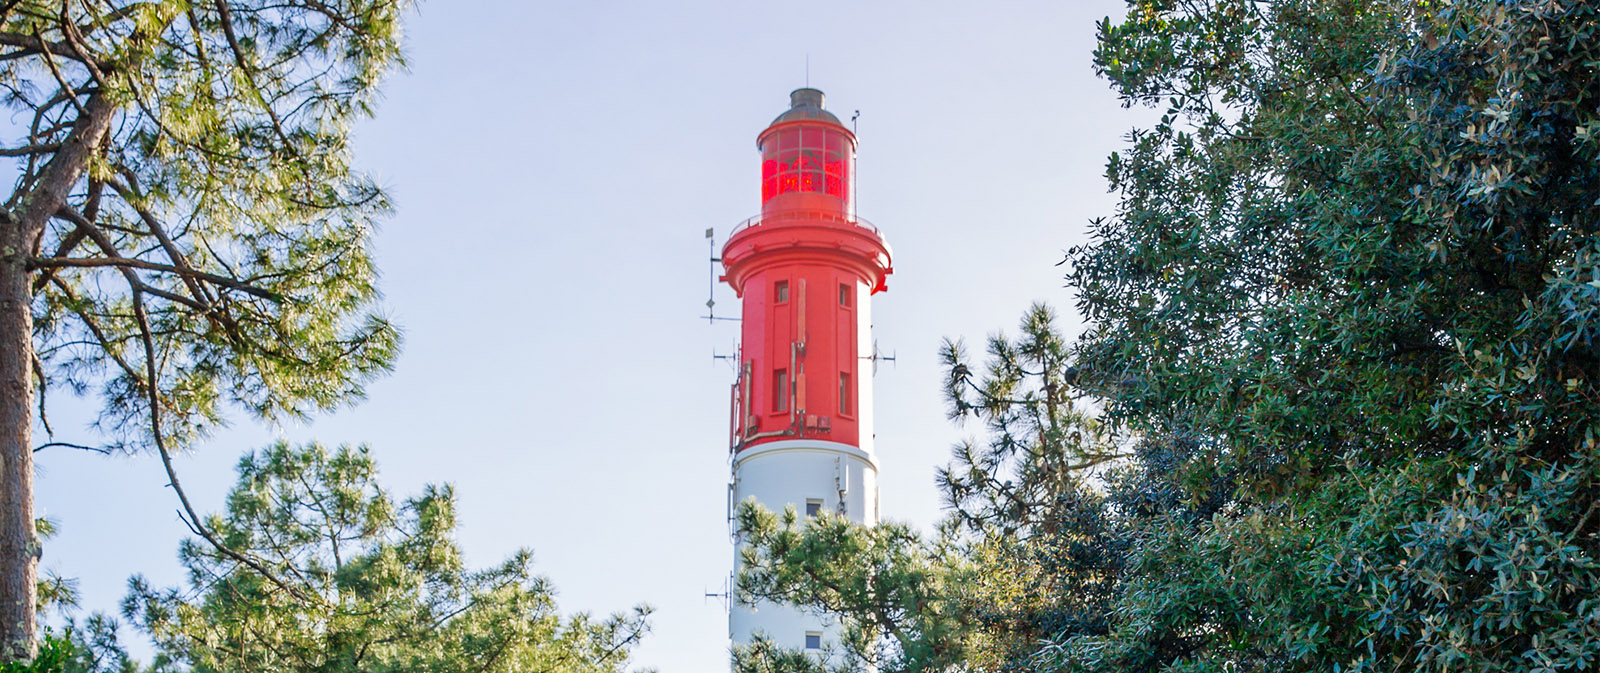 Visit the Cap Ferret lighthouse